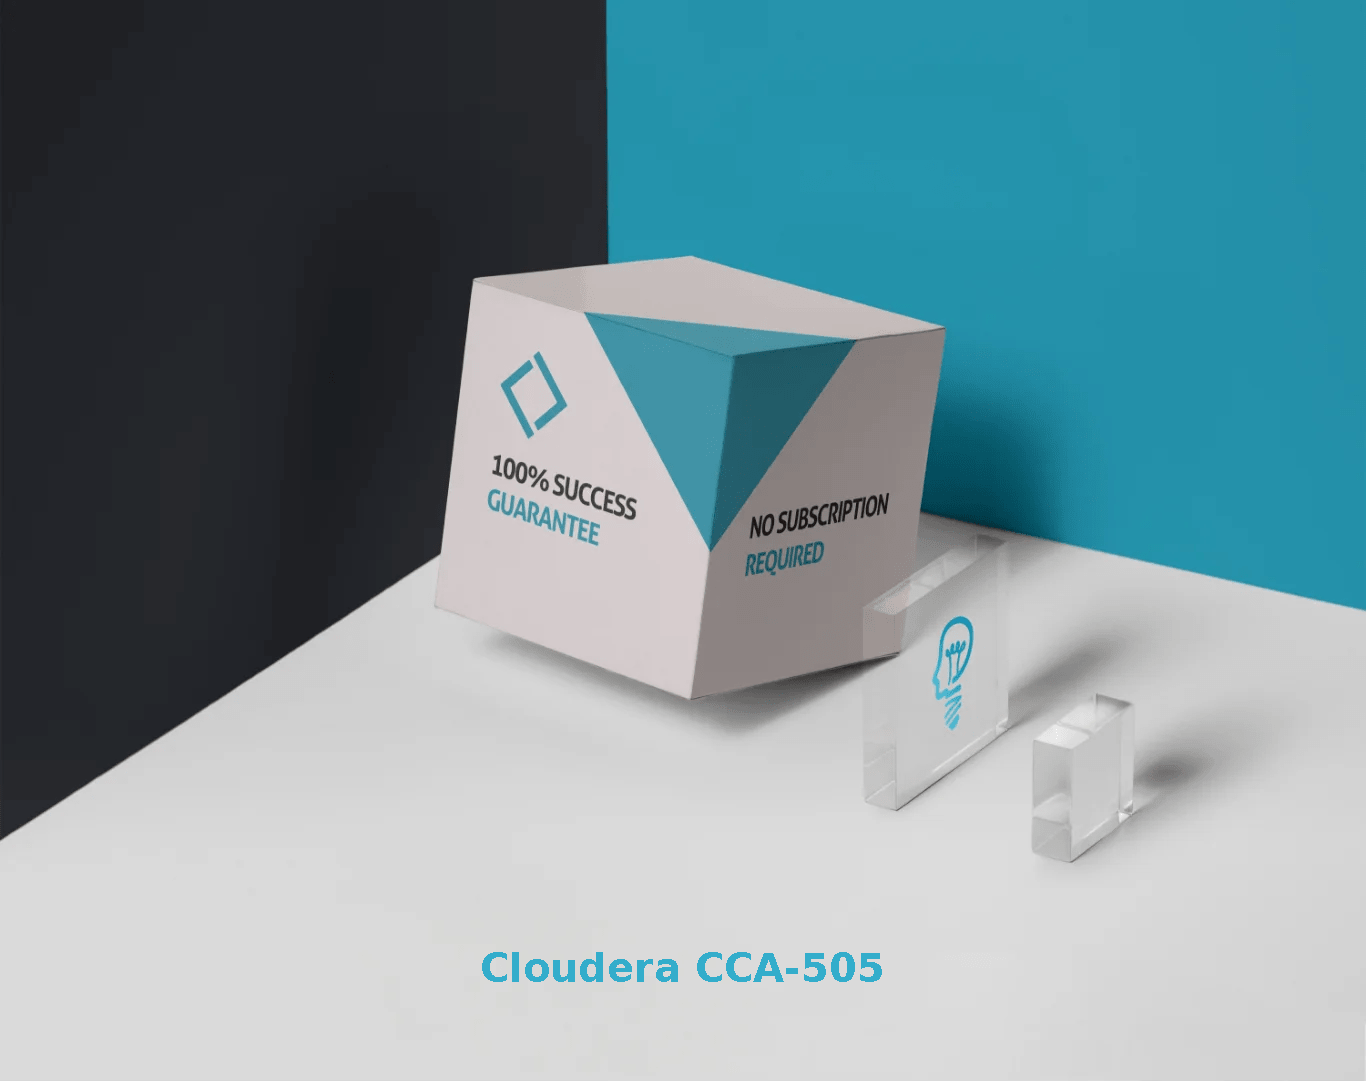 Cloudera CCA-505 Exams